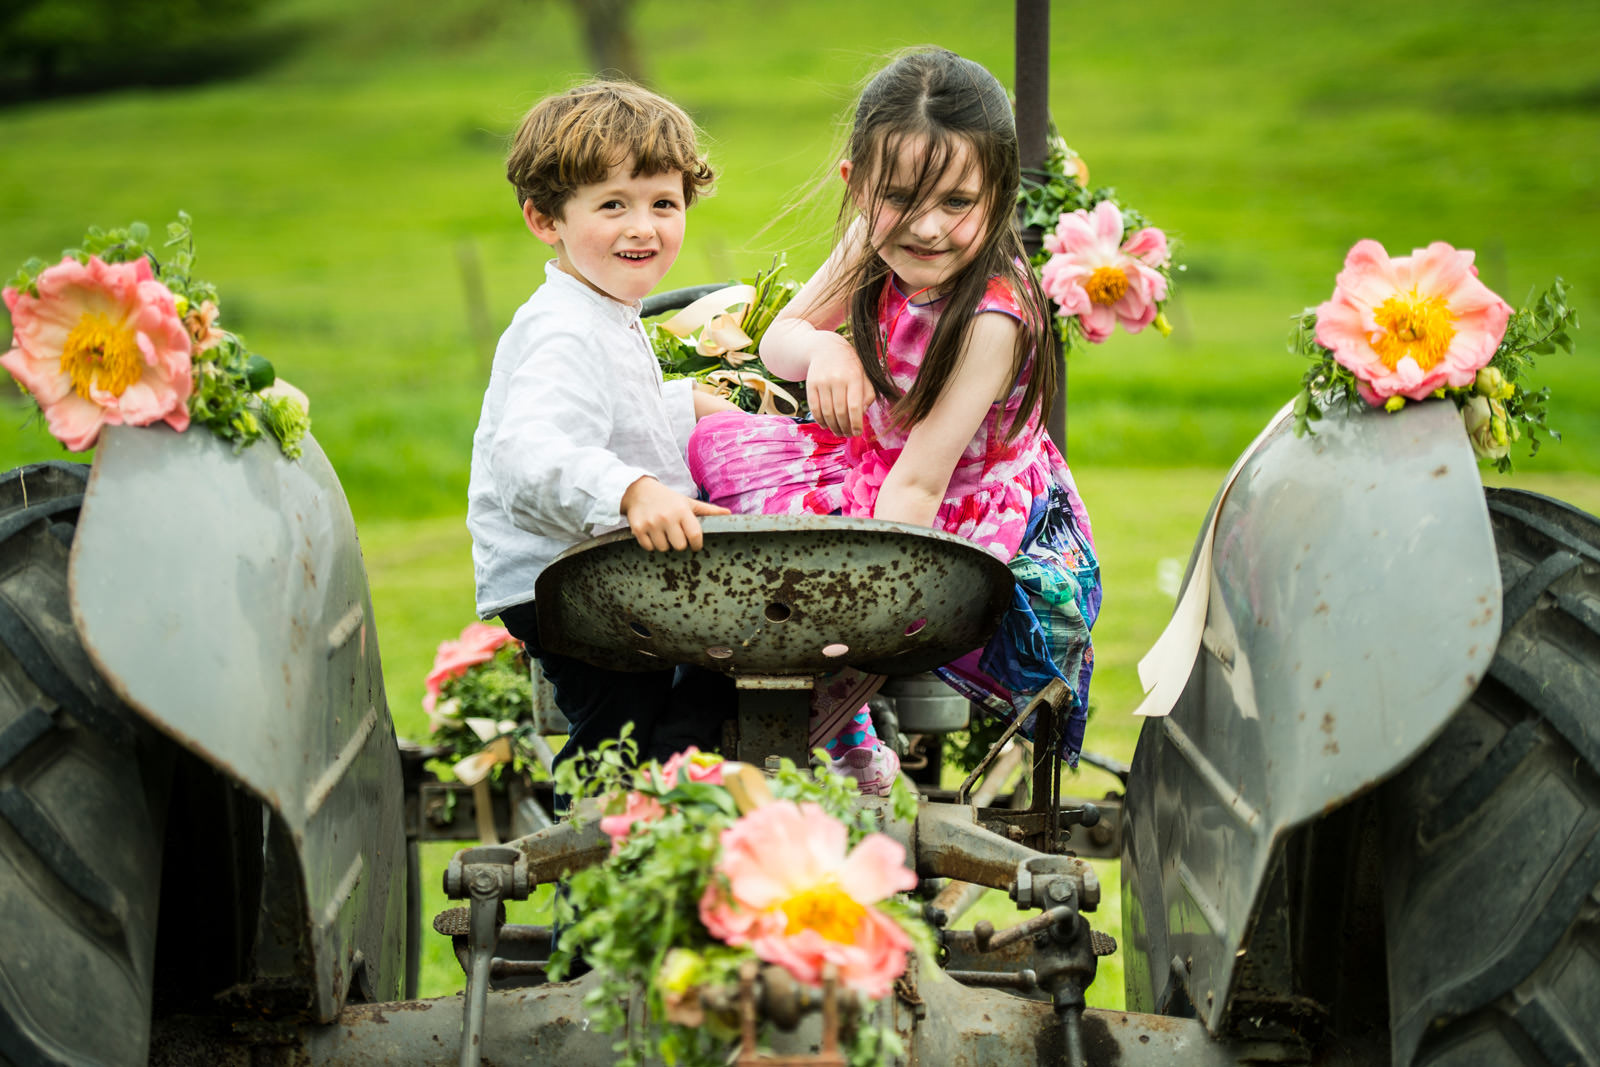 Children play on a tractor with wedding decorations